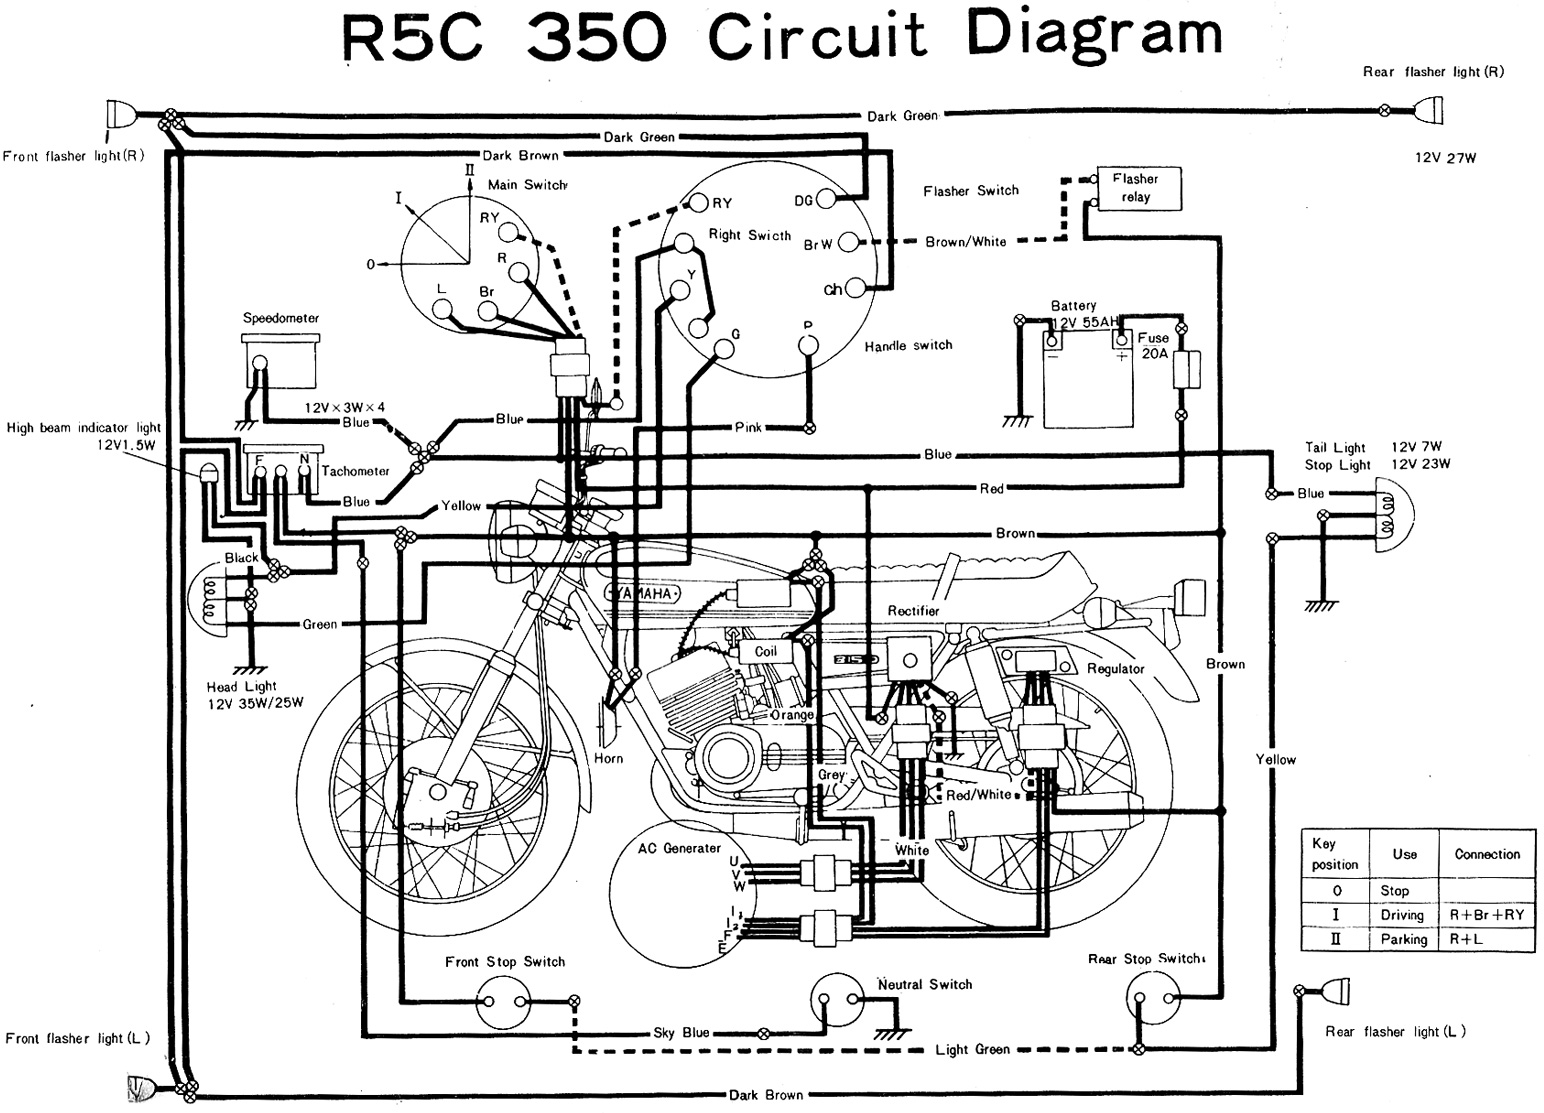 Yamaha Wiring Diagram Posts G1 Electric 36 Rd350 R5c Evan Fell Motorcycle Works Golf Cart